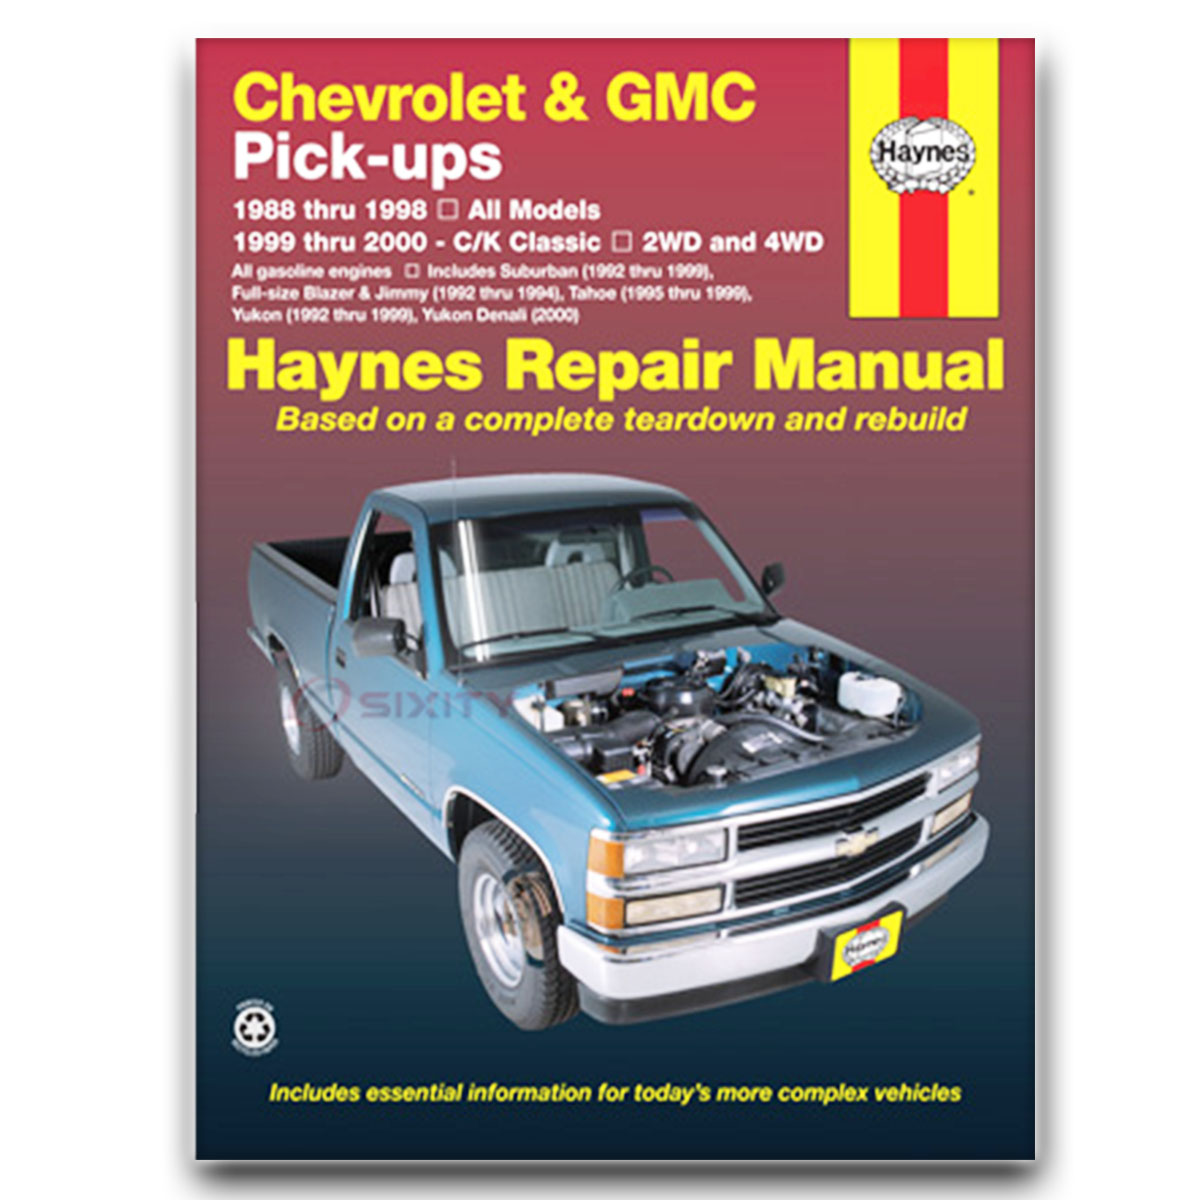 Haynes Repair Manual for Chevy Tahoe Base LS LT Shop Service Garage Book zq